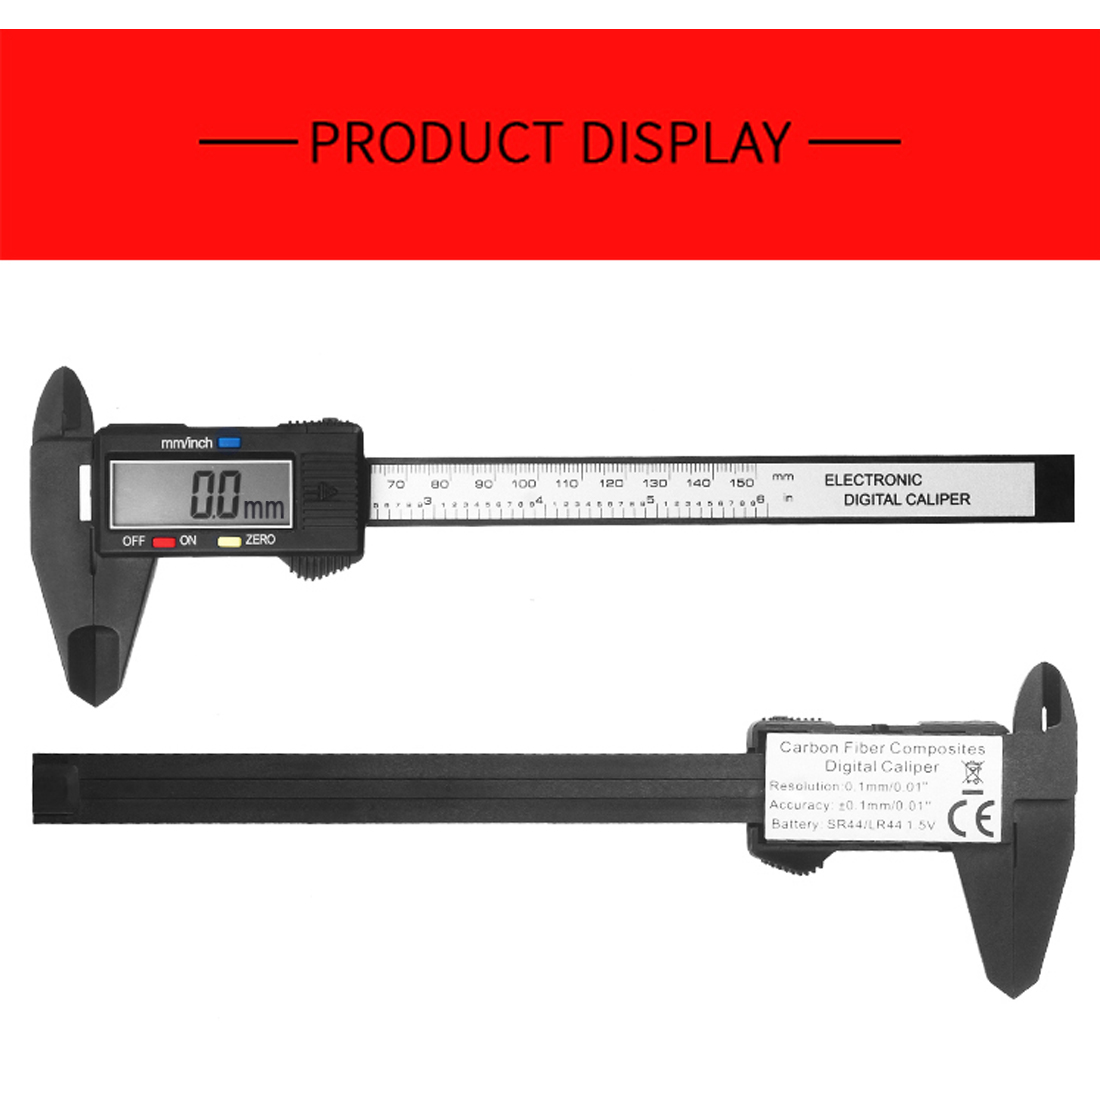 1pcs 150mm Electronic Digital Caliper 6 Inch Carbon Fiber Vernier Caliper Gauge Micrometer Measuring Tool Digital Ruler